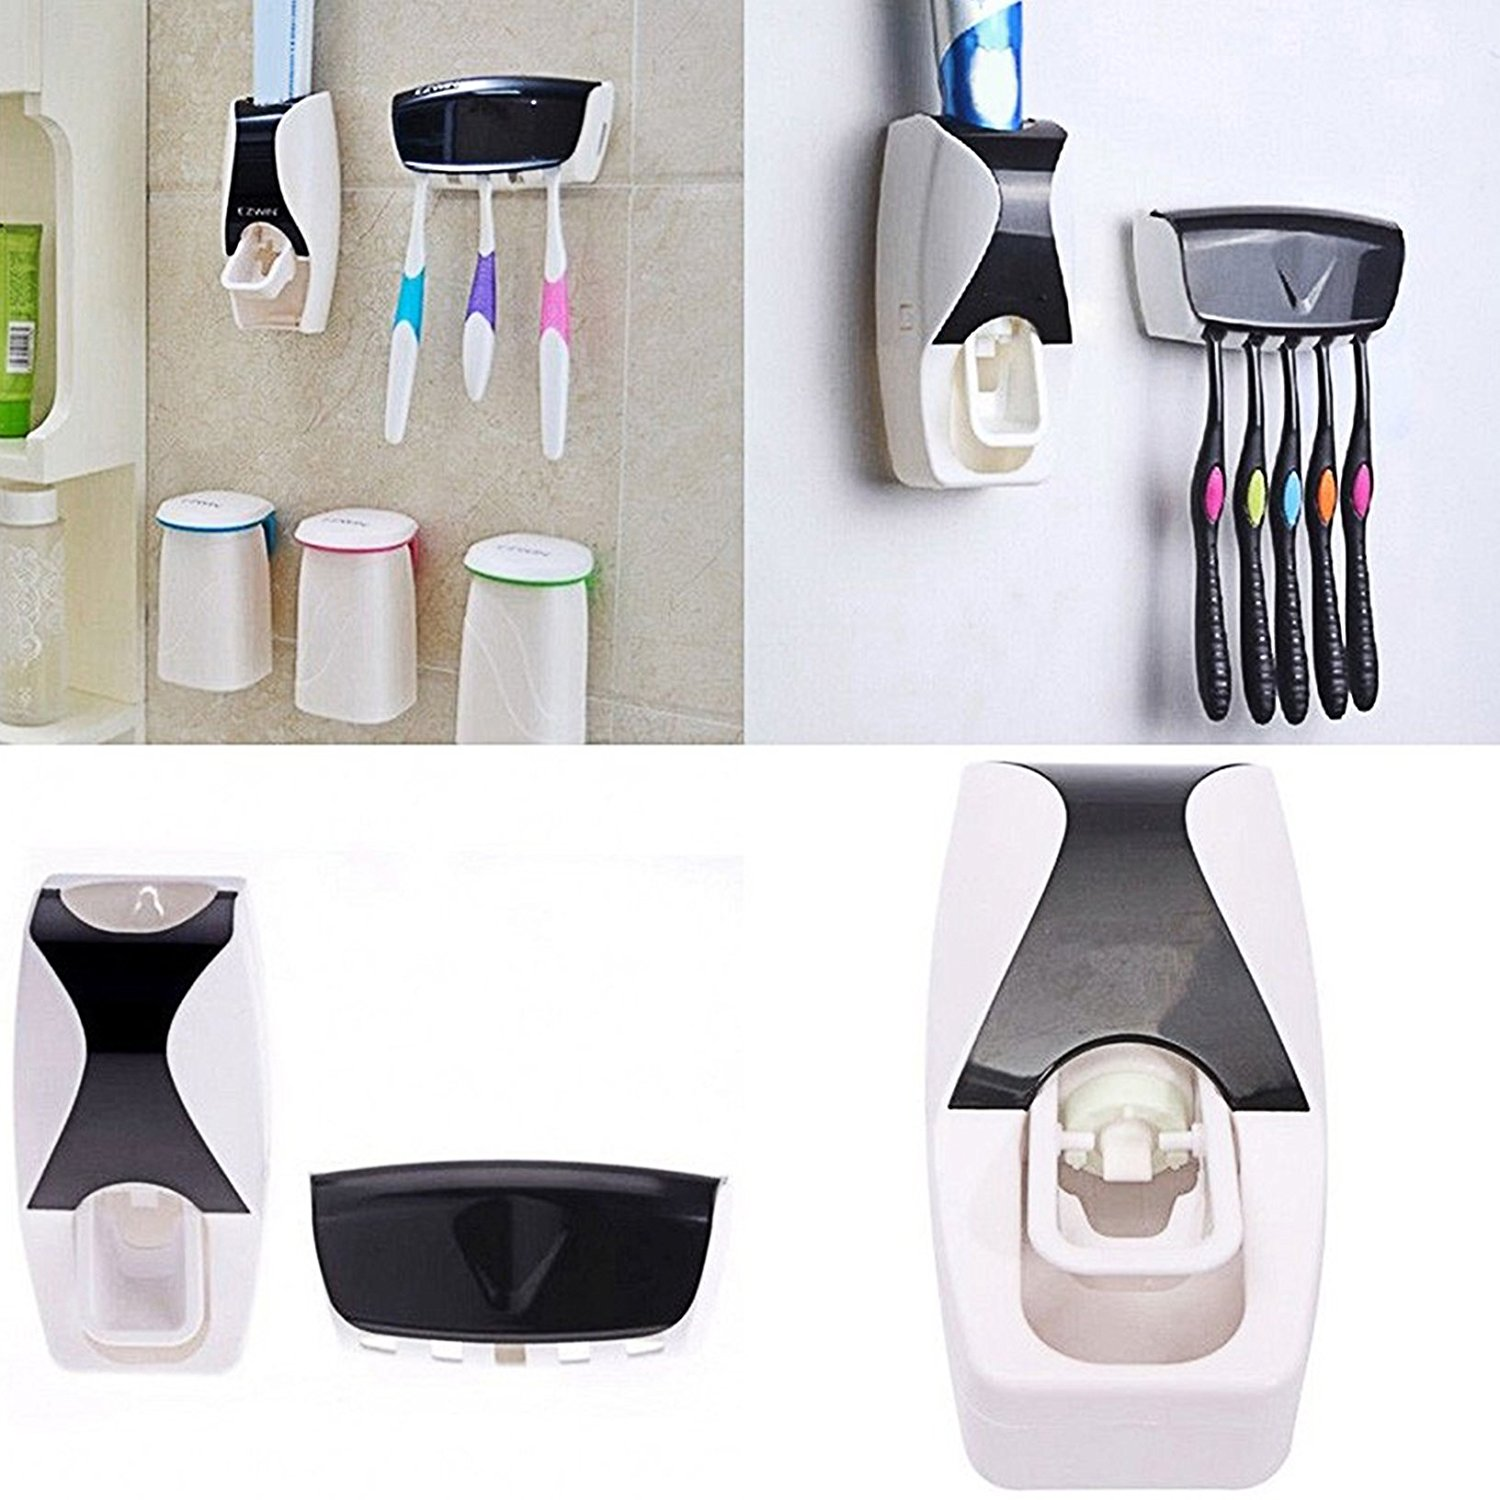 Automatic Toothpaste Dispenser Toothbrush Holder Set Wall Mount Stand Bathroom Accessories Home Decor